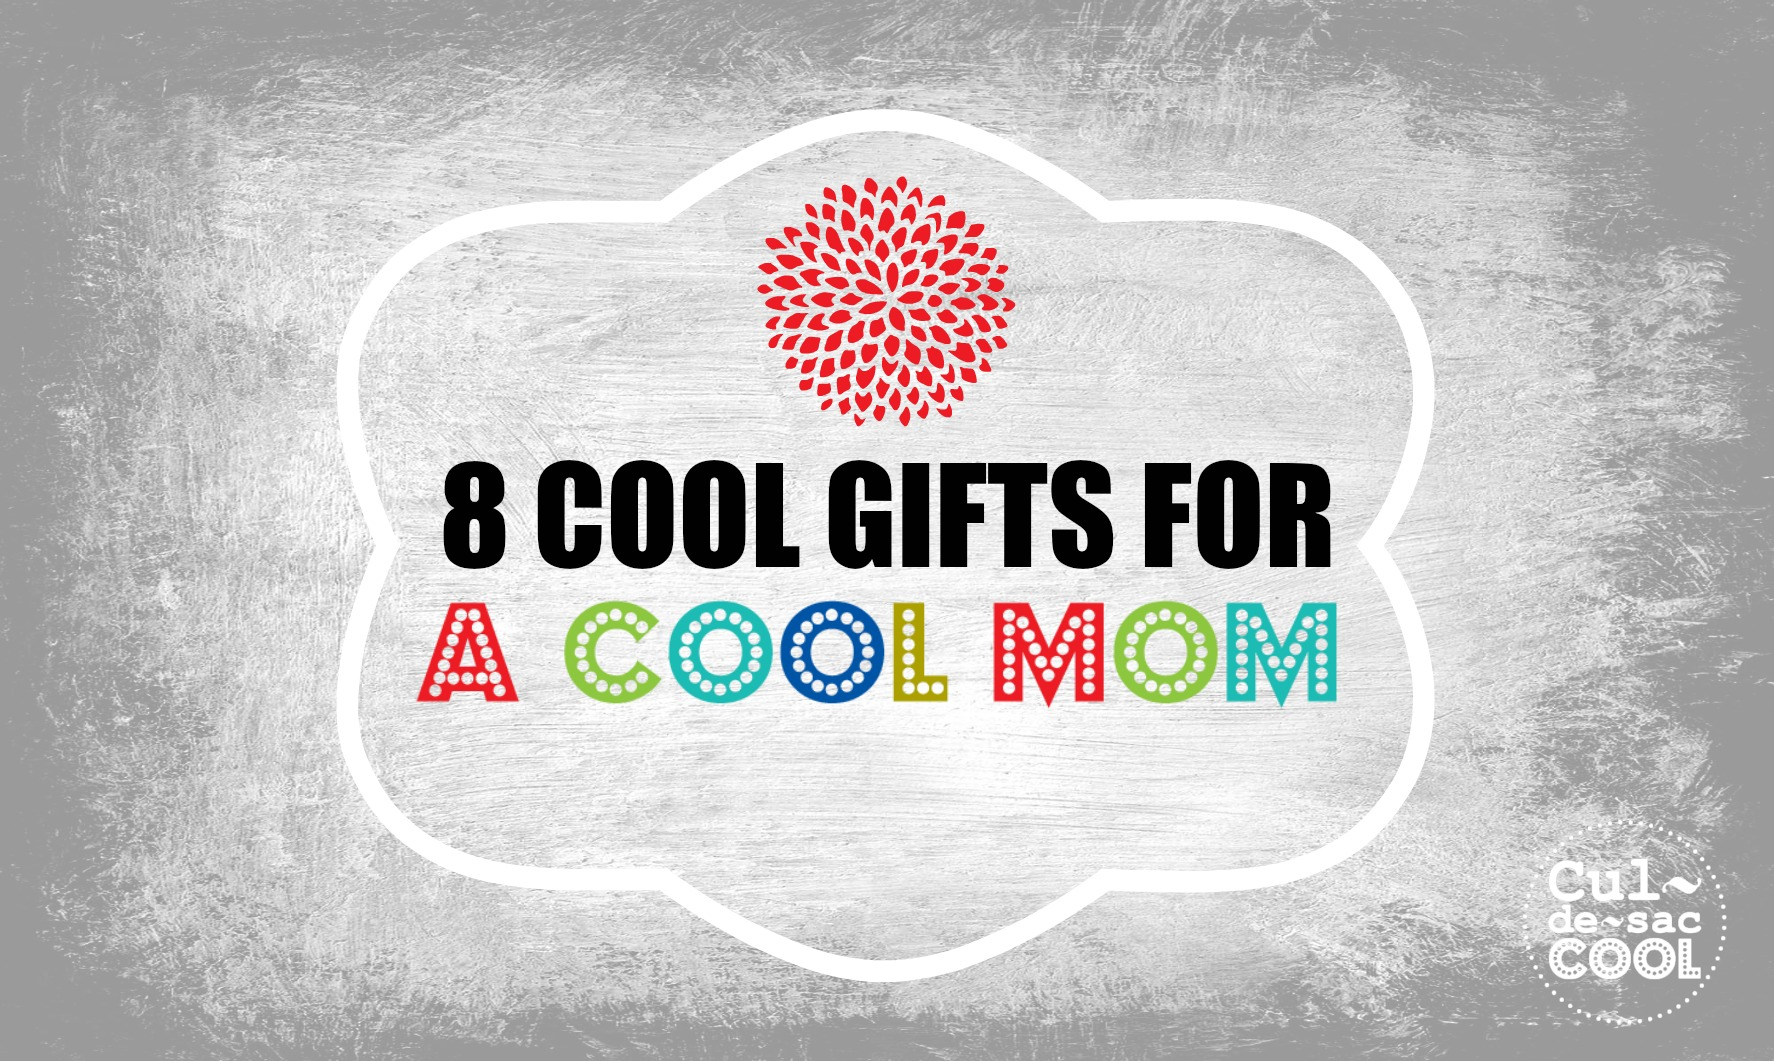 8 COOL GIFTS FOR A COOL MOM COVER 2